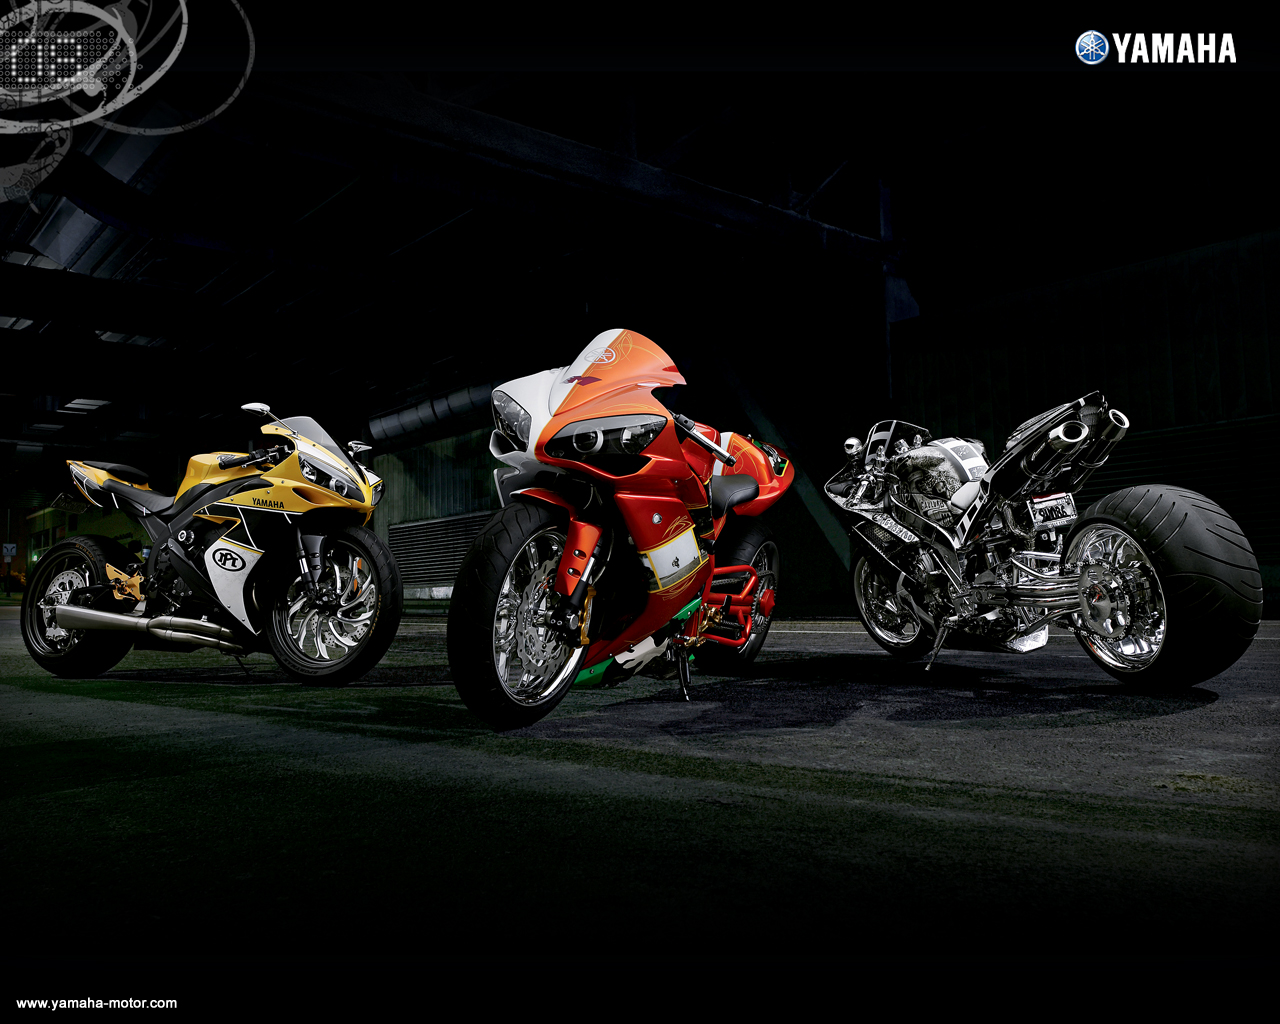 HD Yamaha Wallpaper Background Images For Download 1280x1024